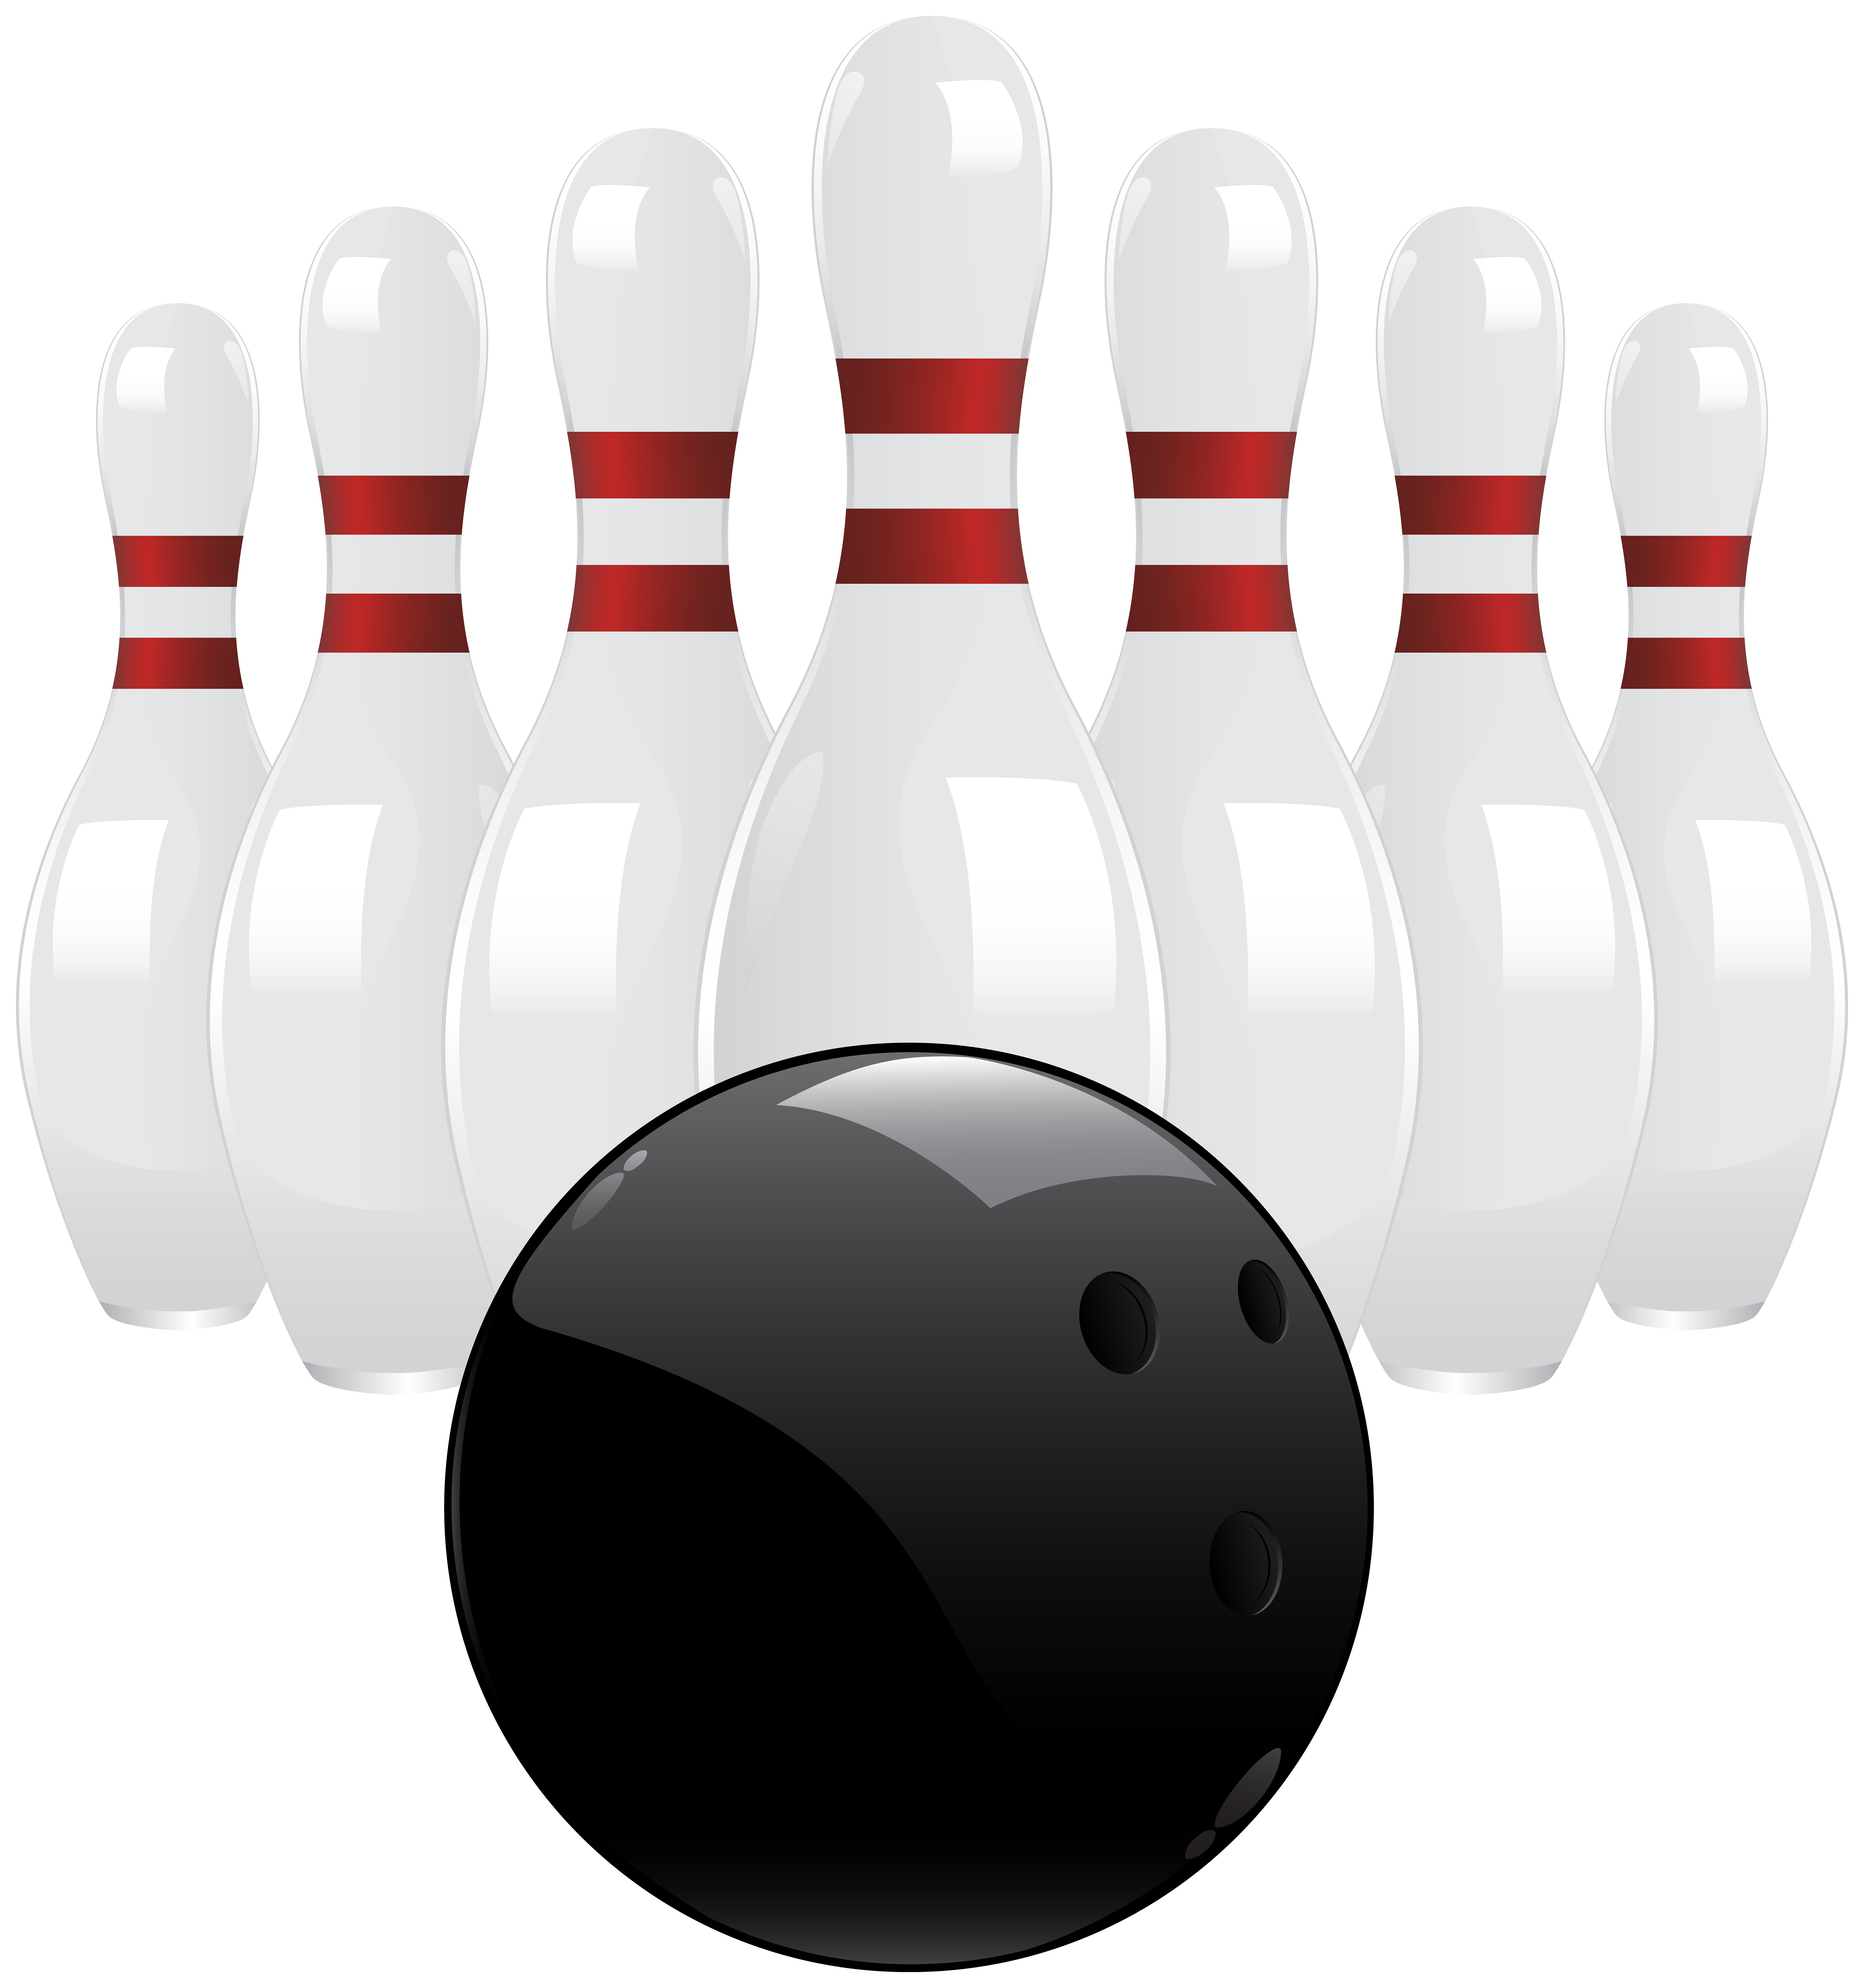 Bowling clipart sport. Black ball and pins